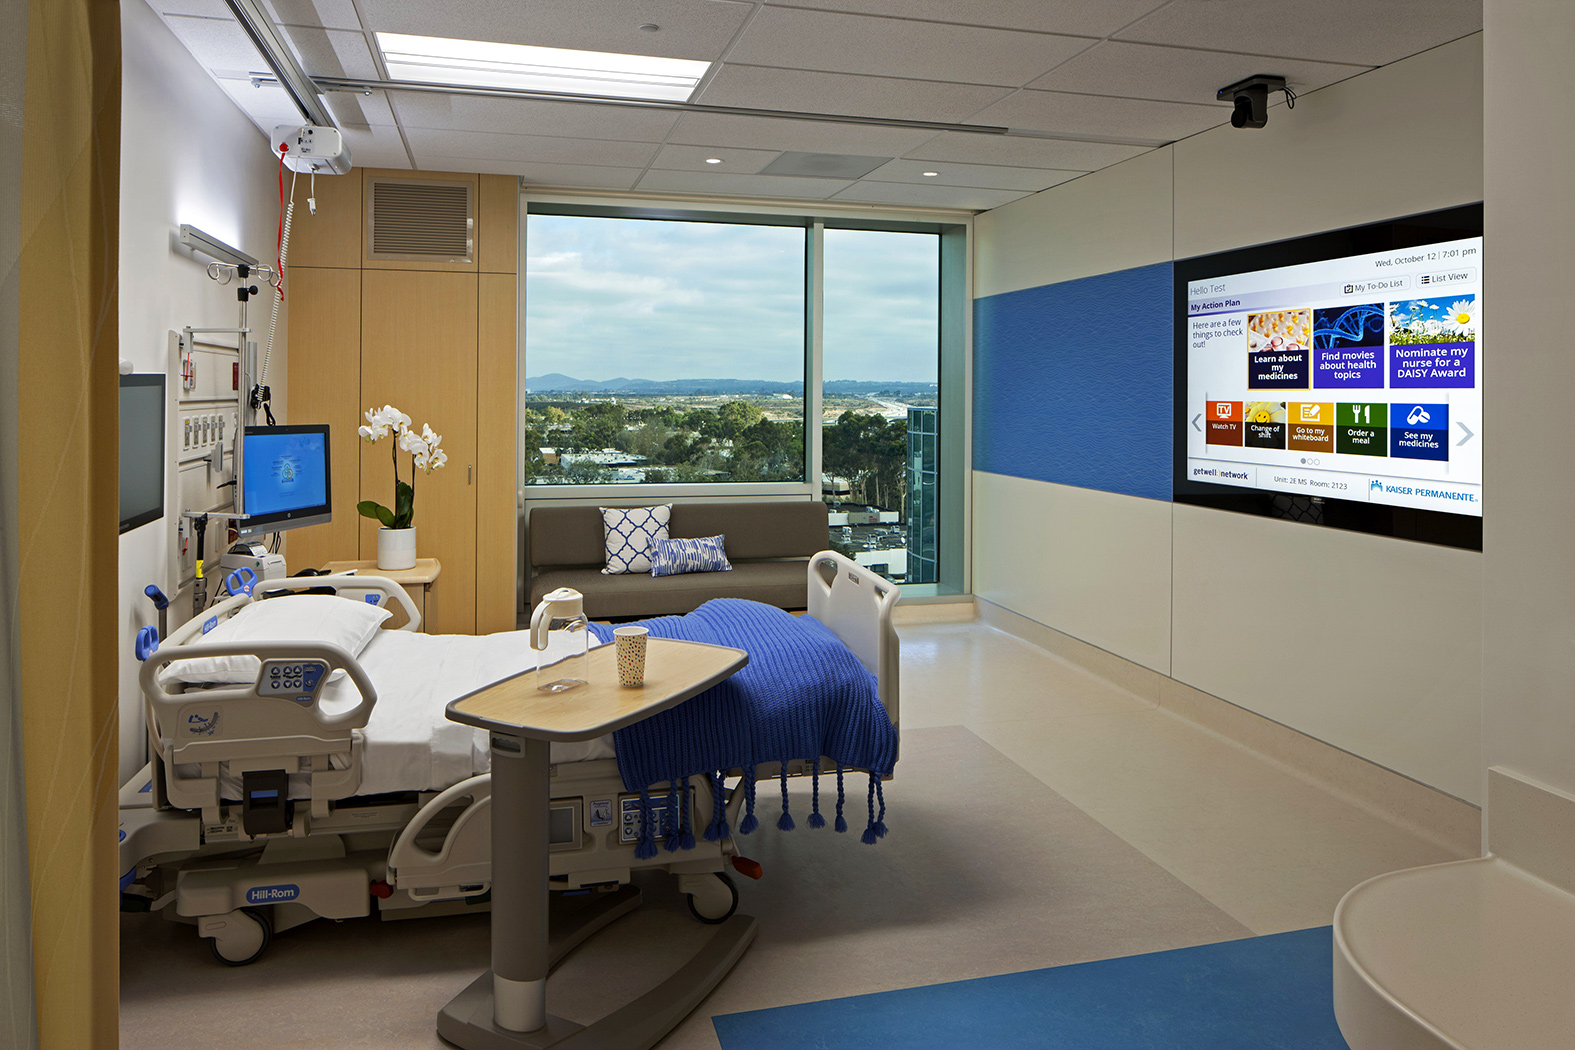 Kaiser's San Diego Medical Center takes cues from design